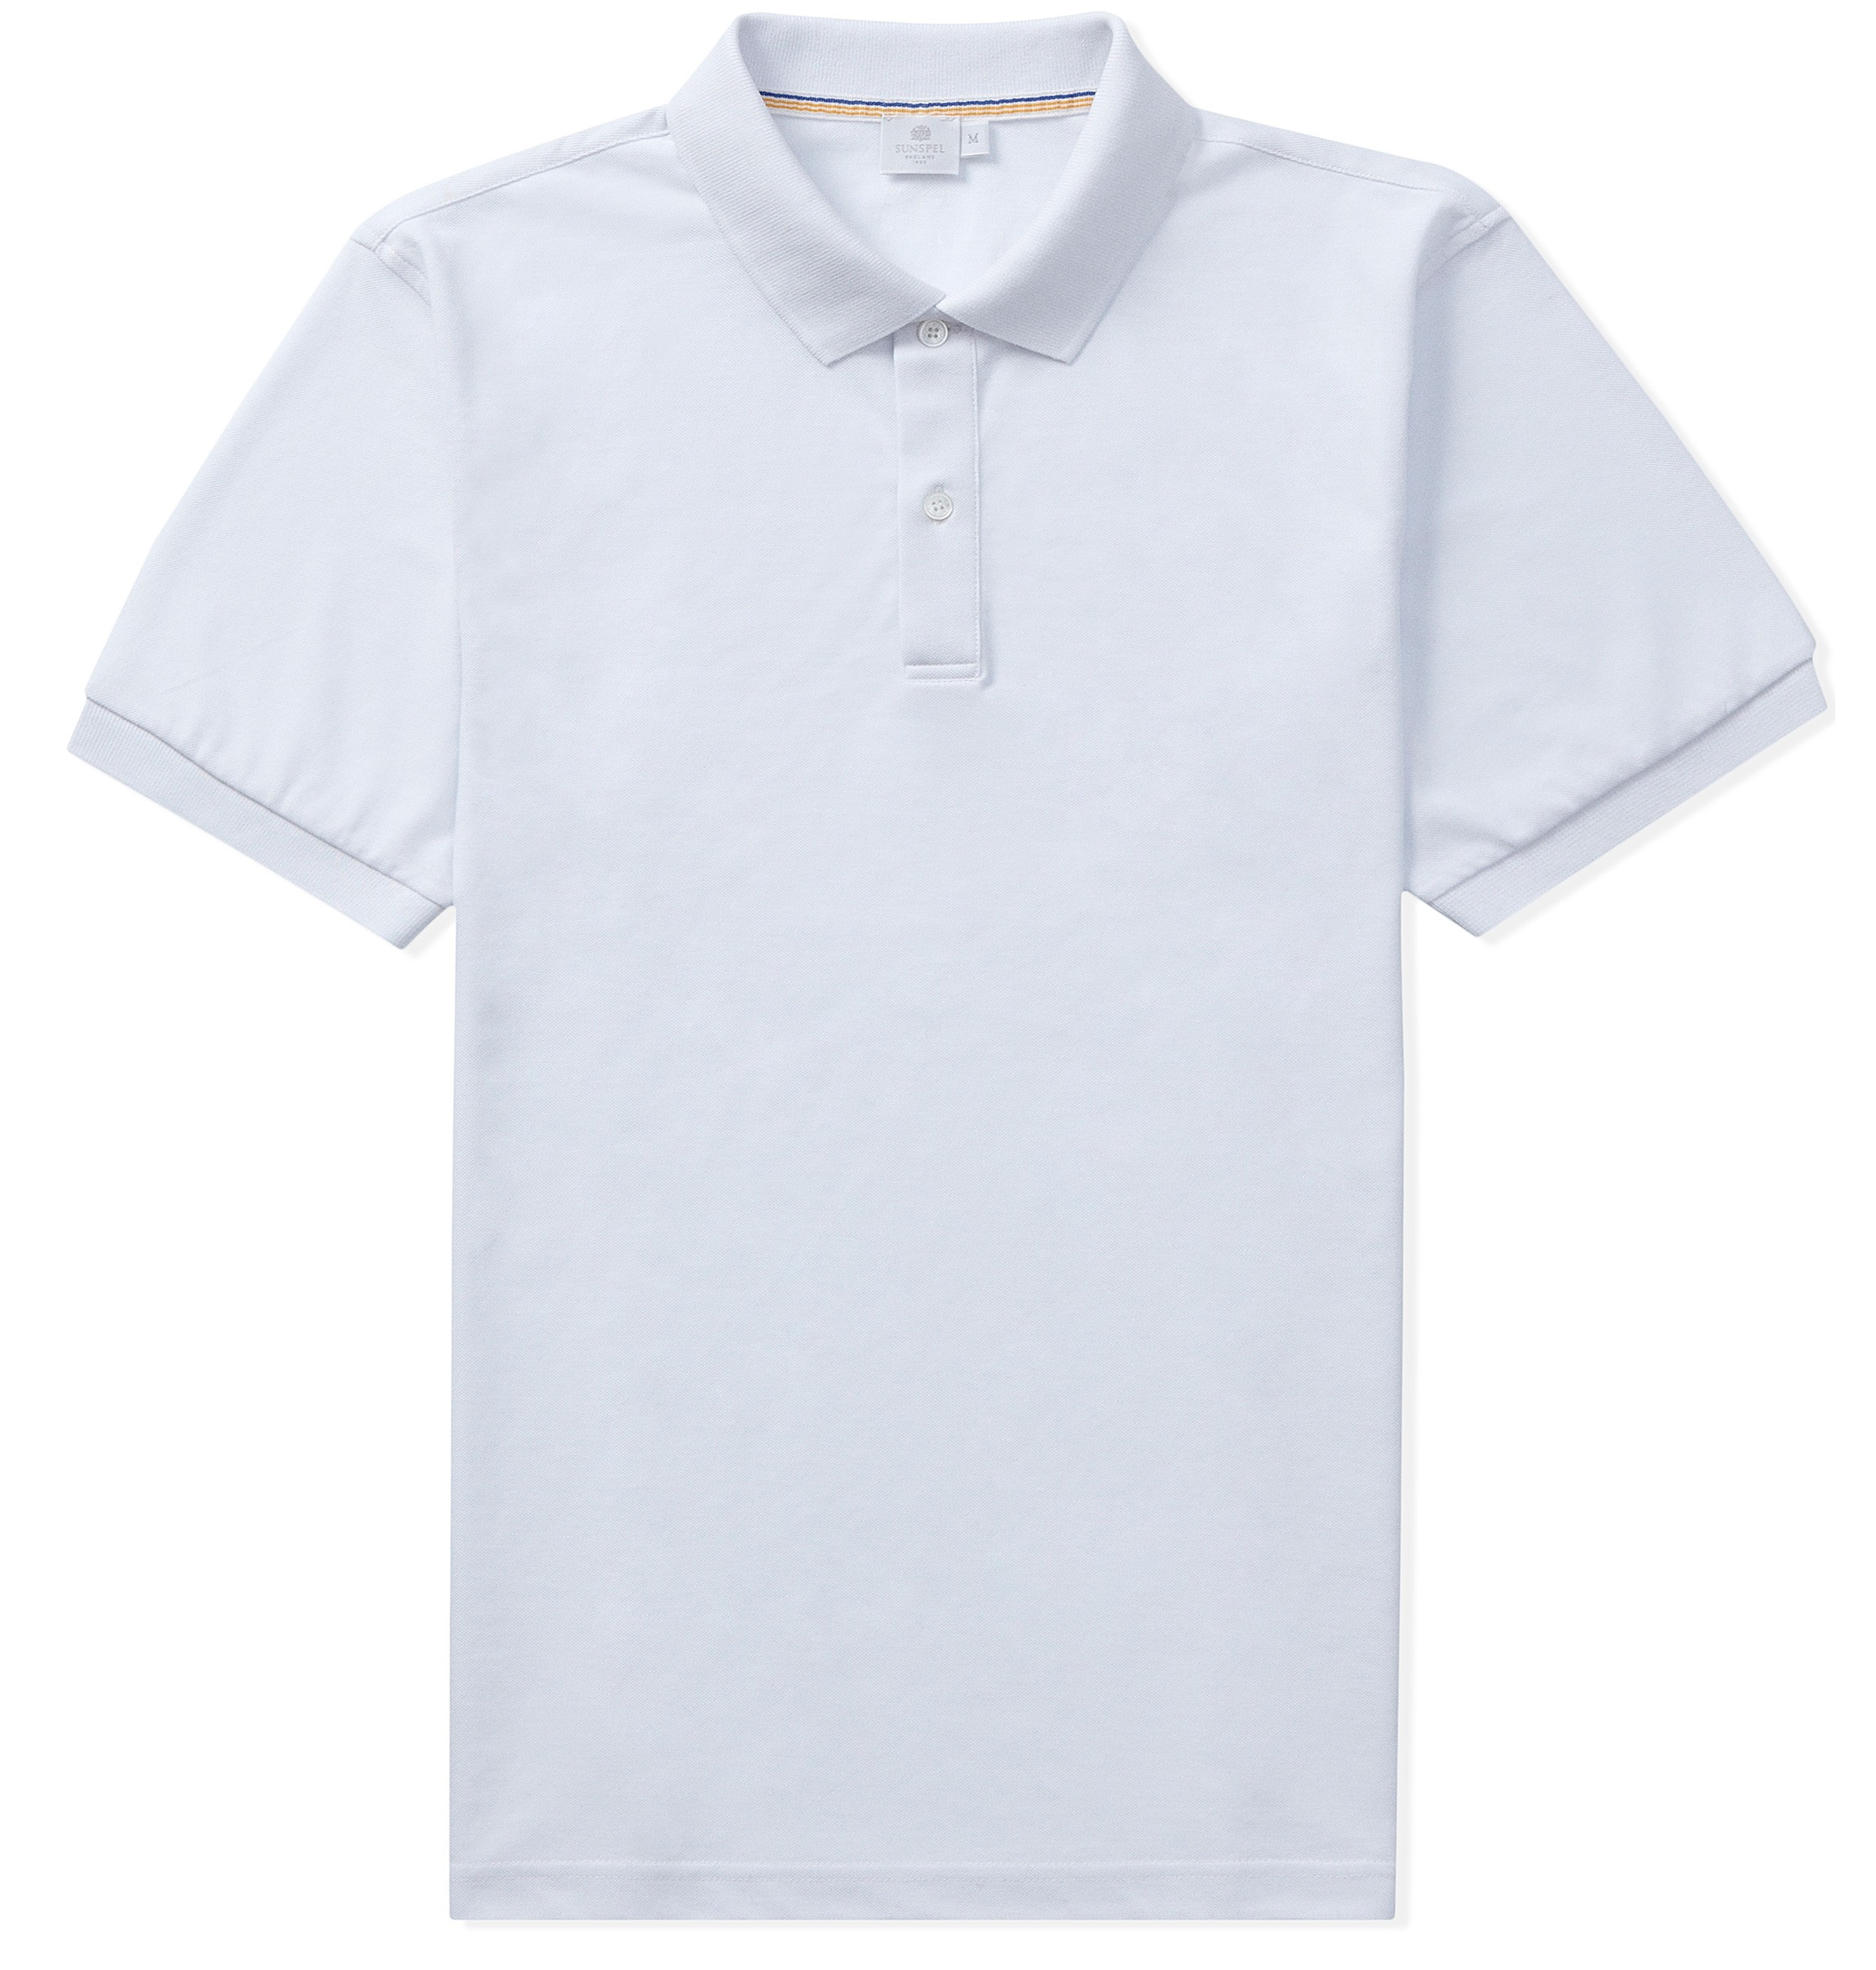 Boss Shirts For Men